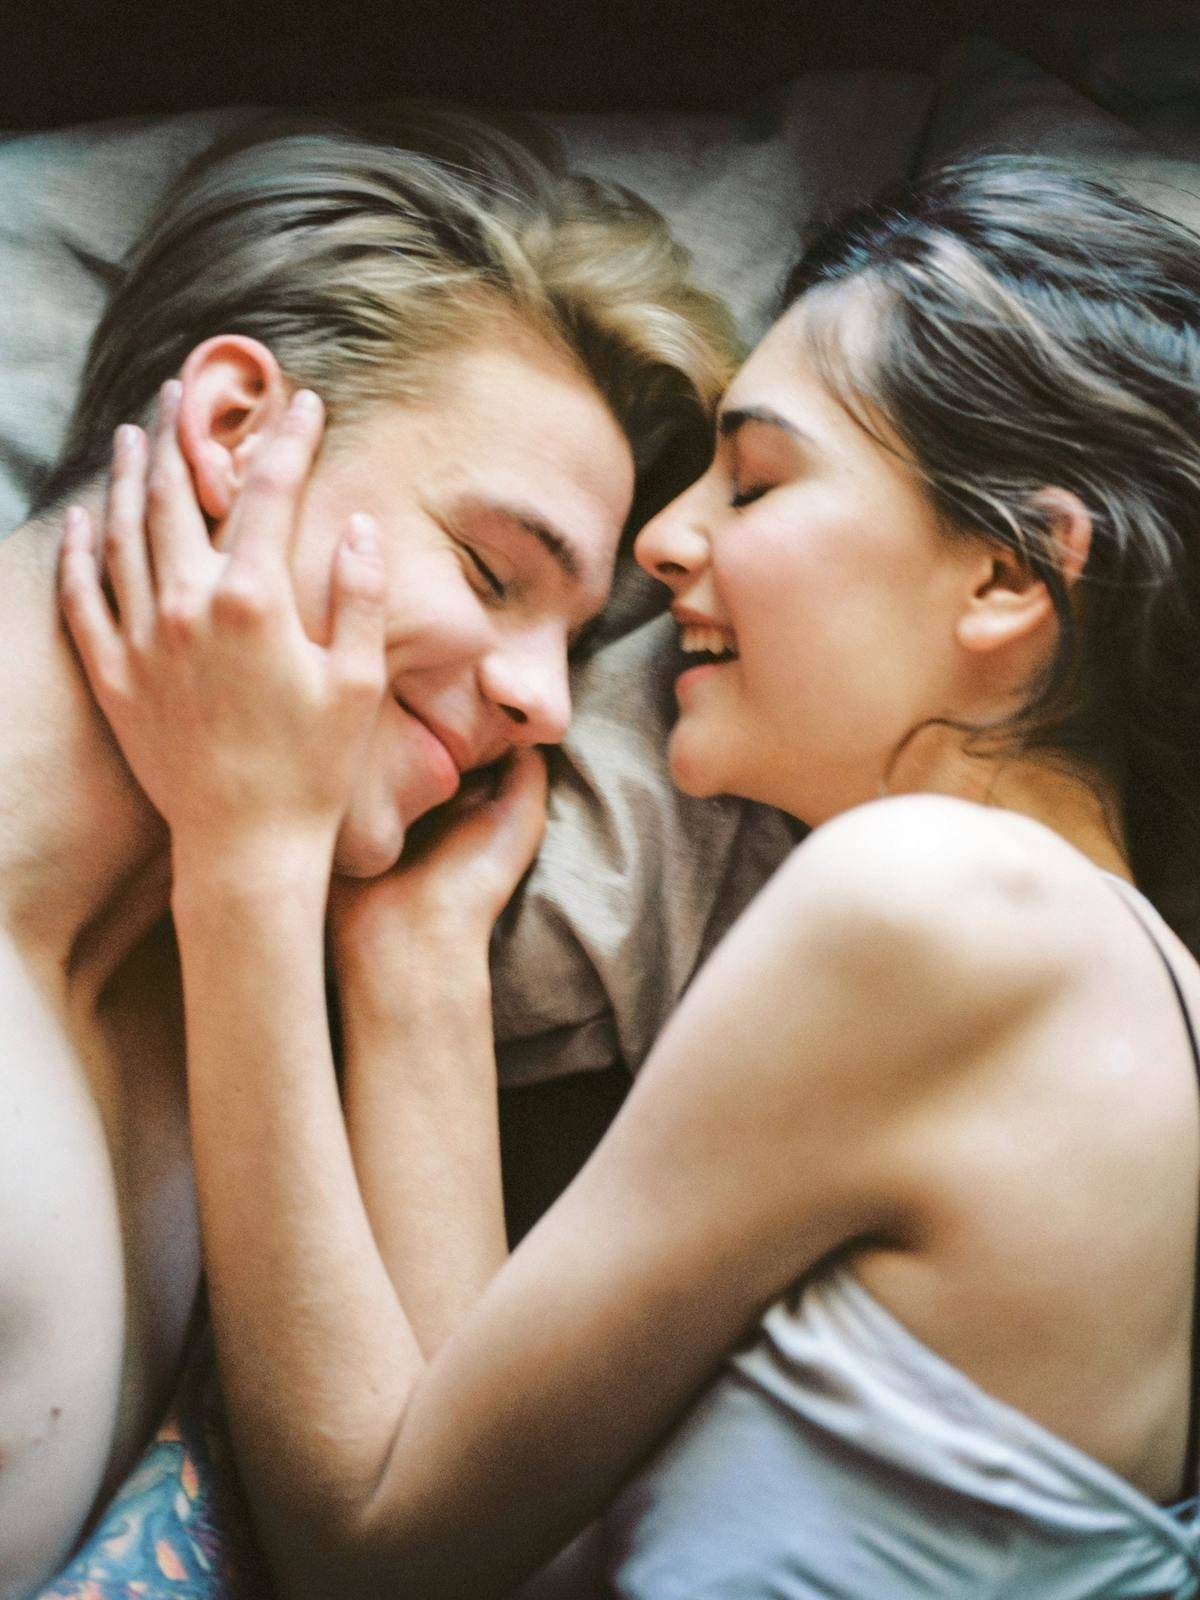 Young couple lying in bed, cuddling and smiling as the woman caresses the man's face